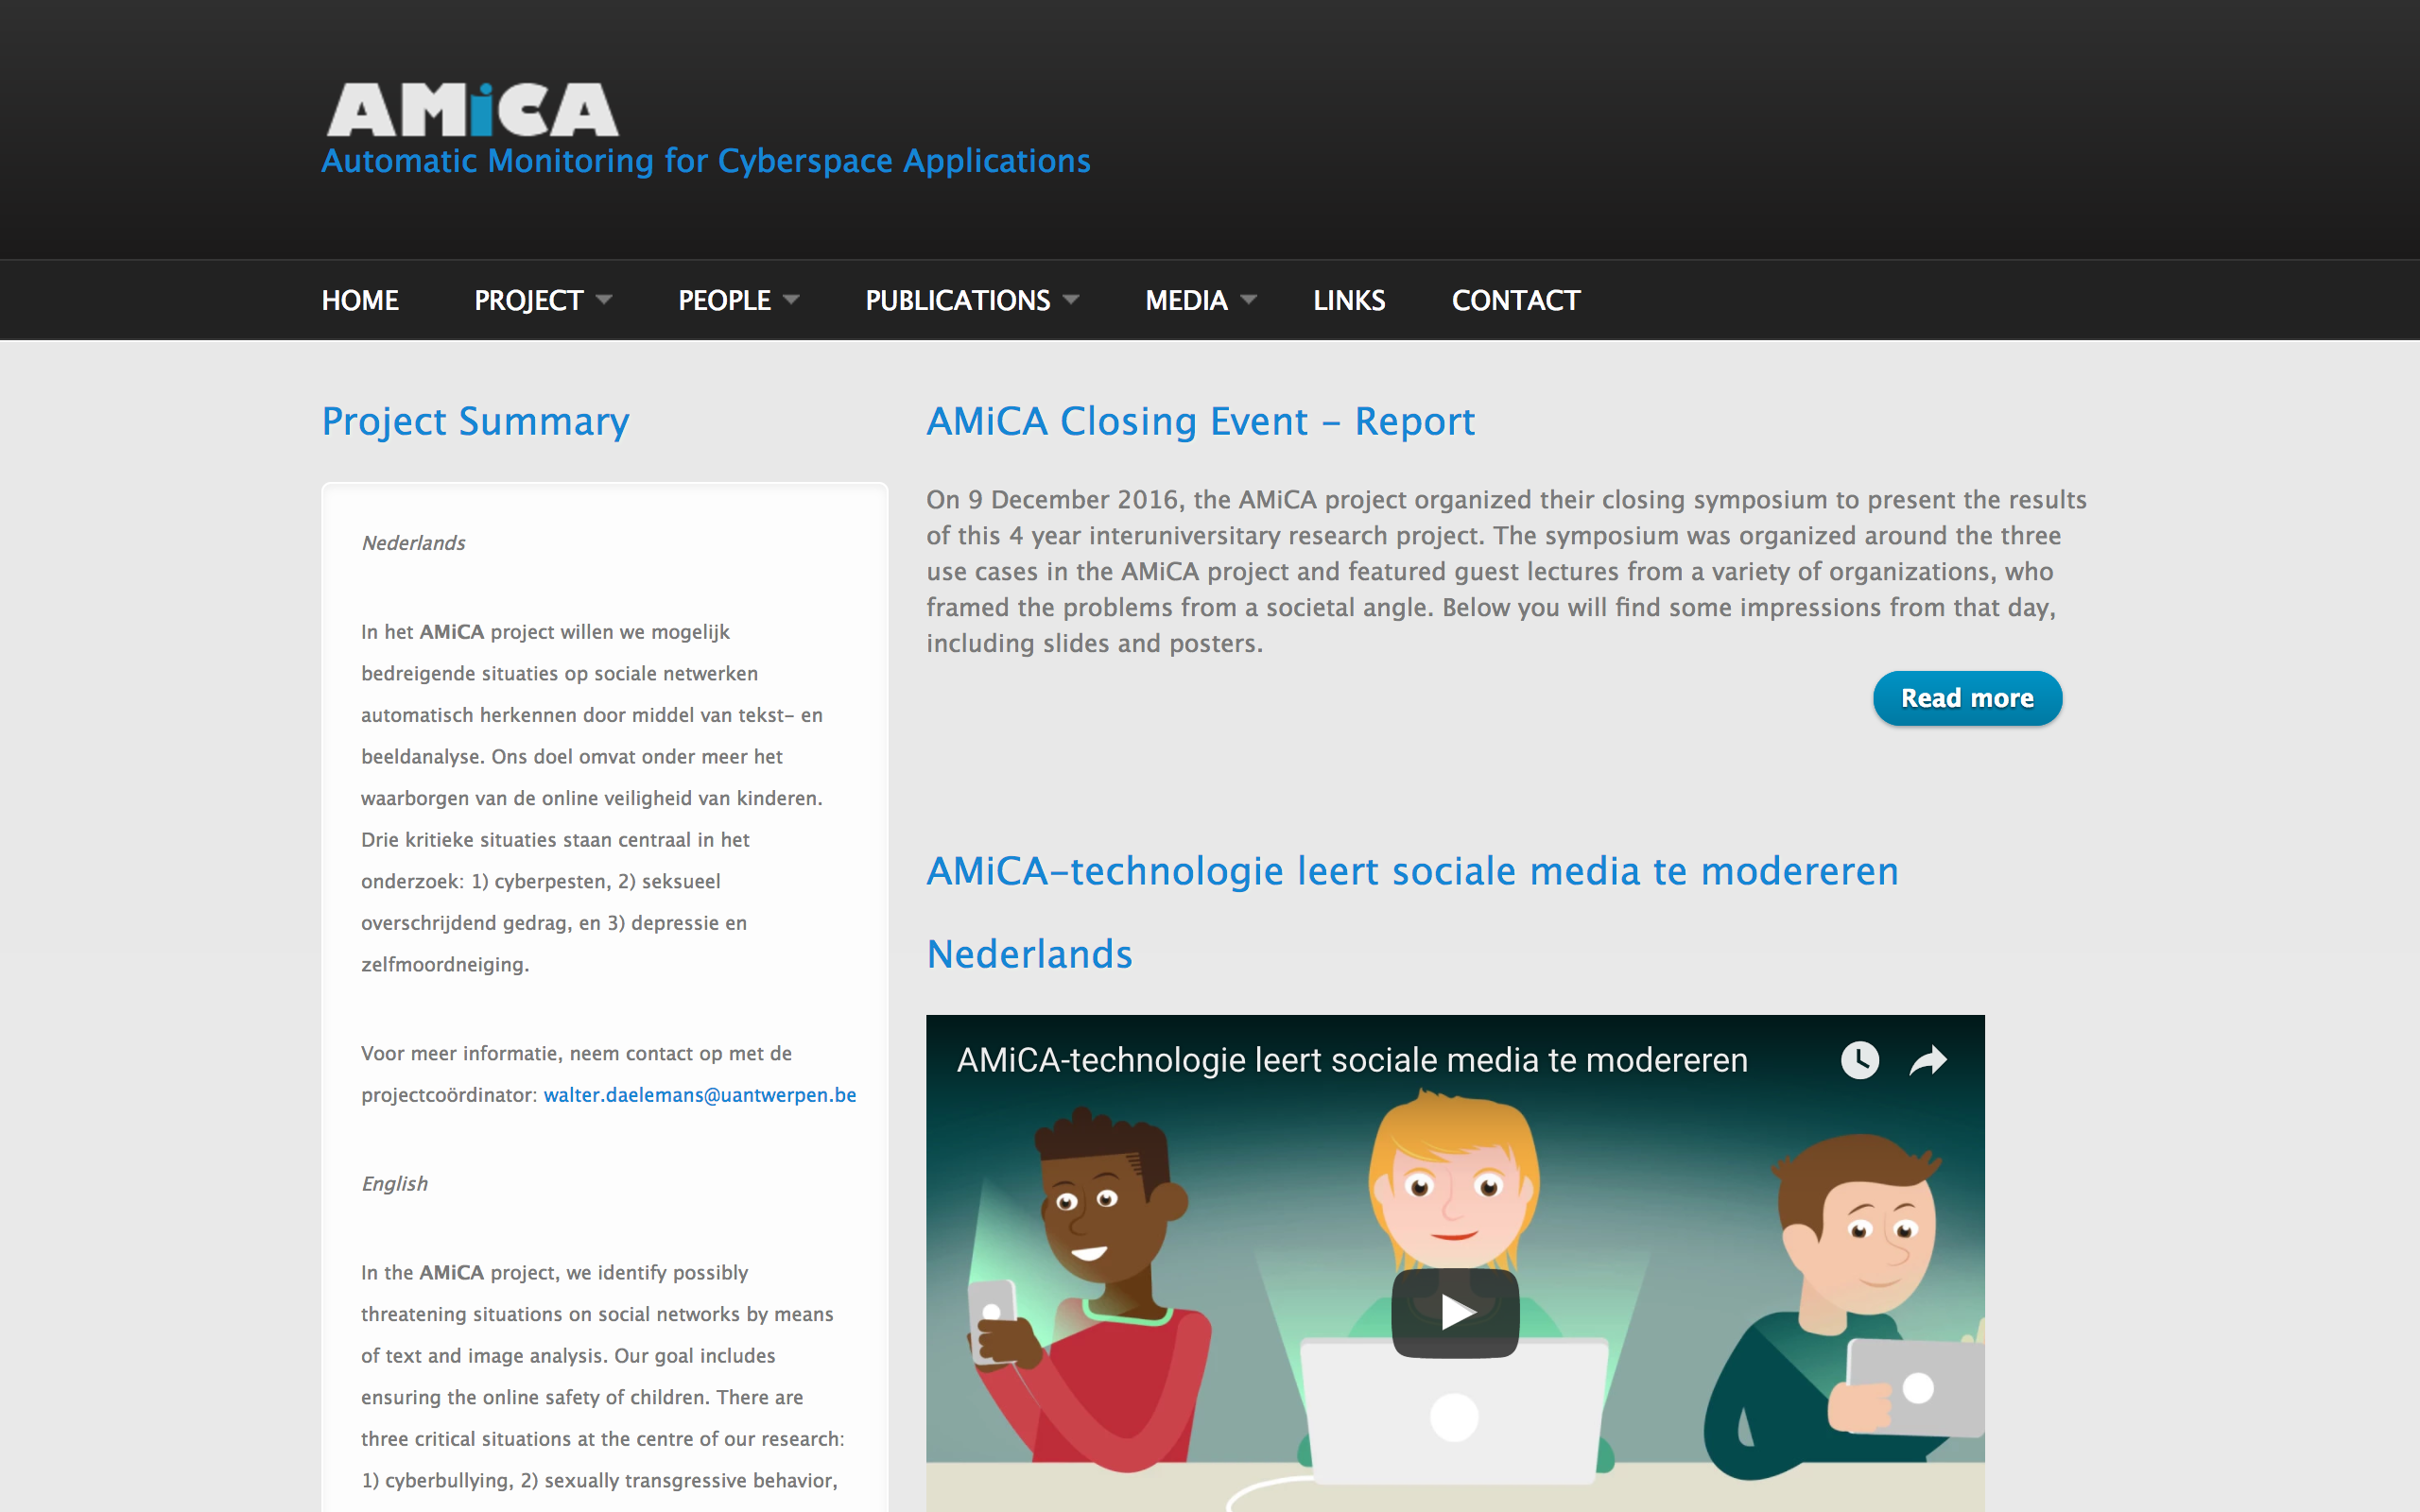 AMiCA: Automatic Monitoring for Cyberspace Applications